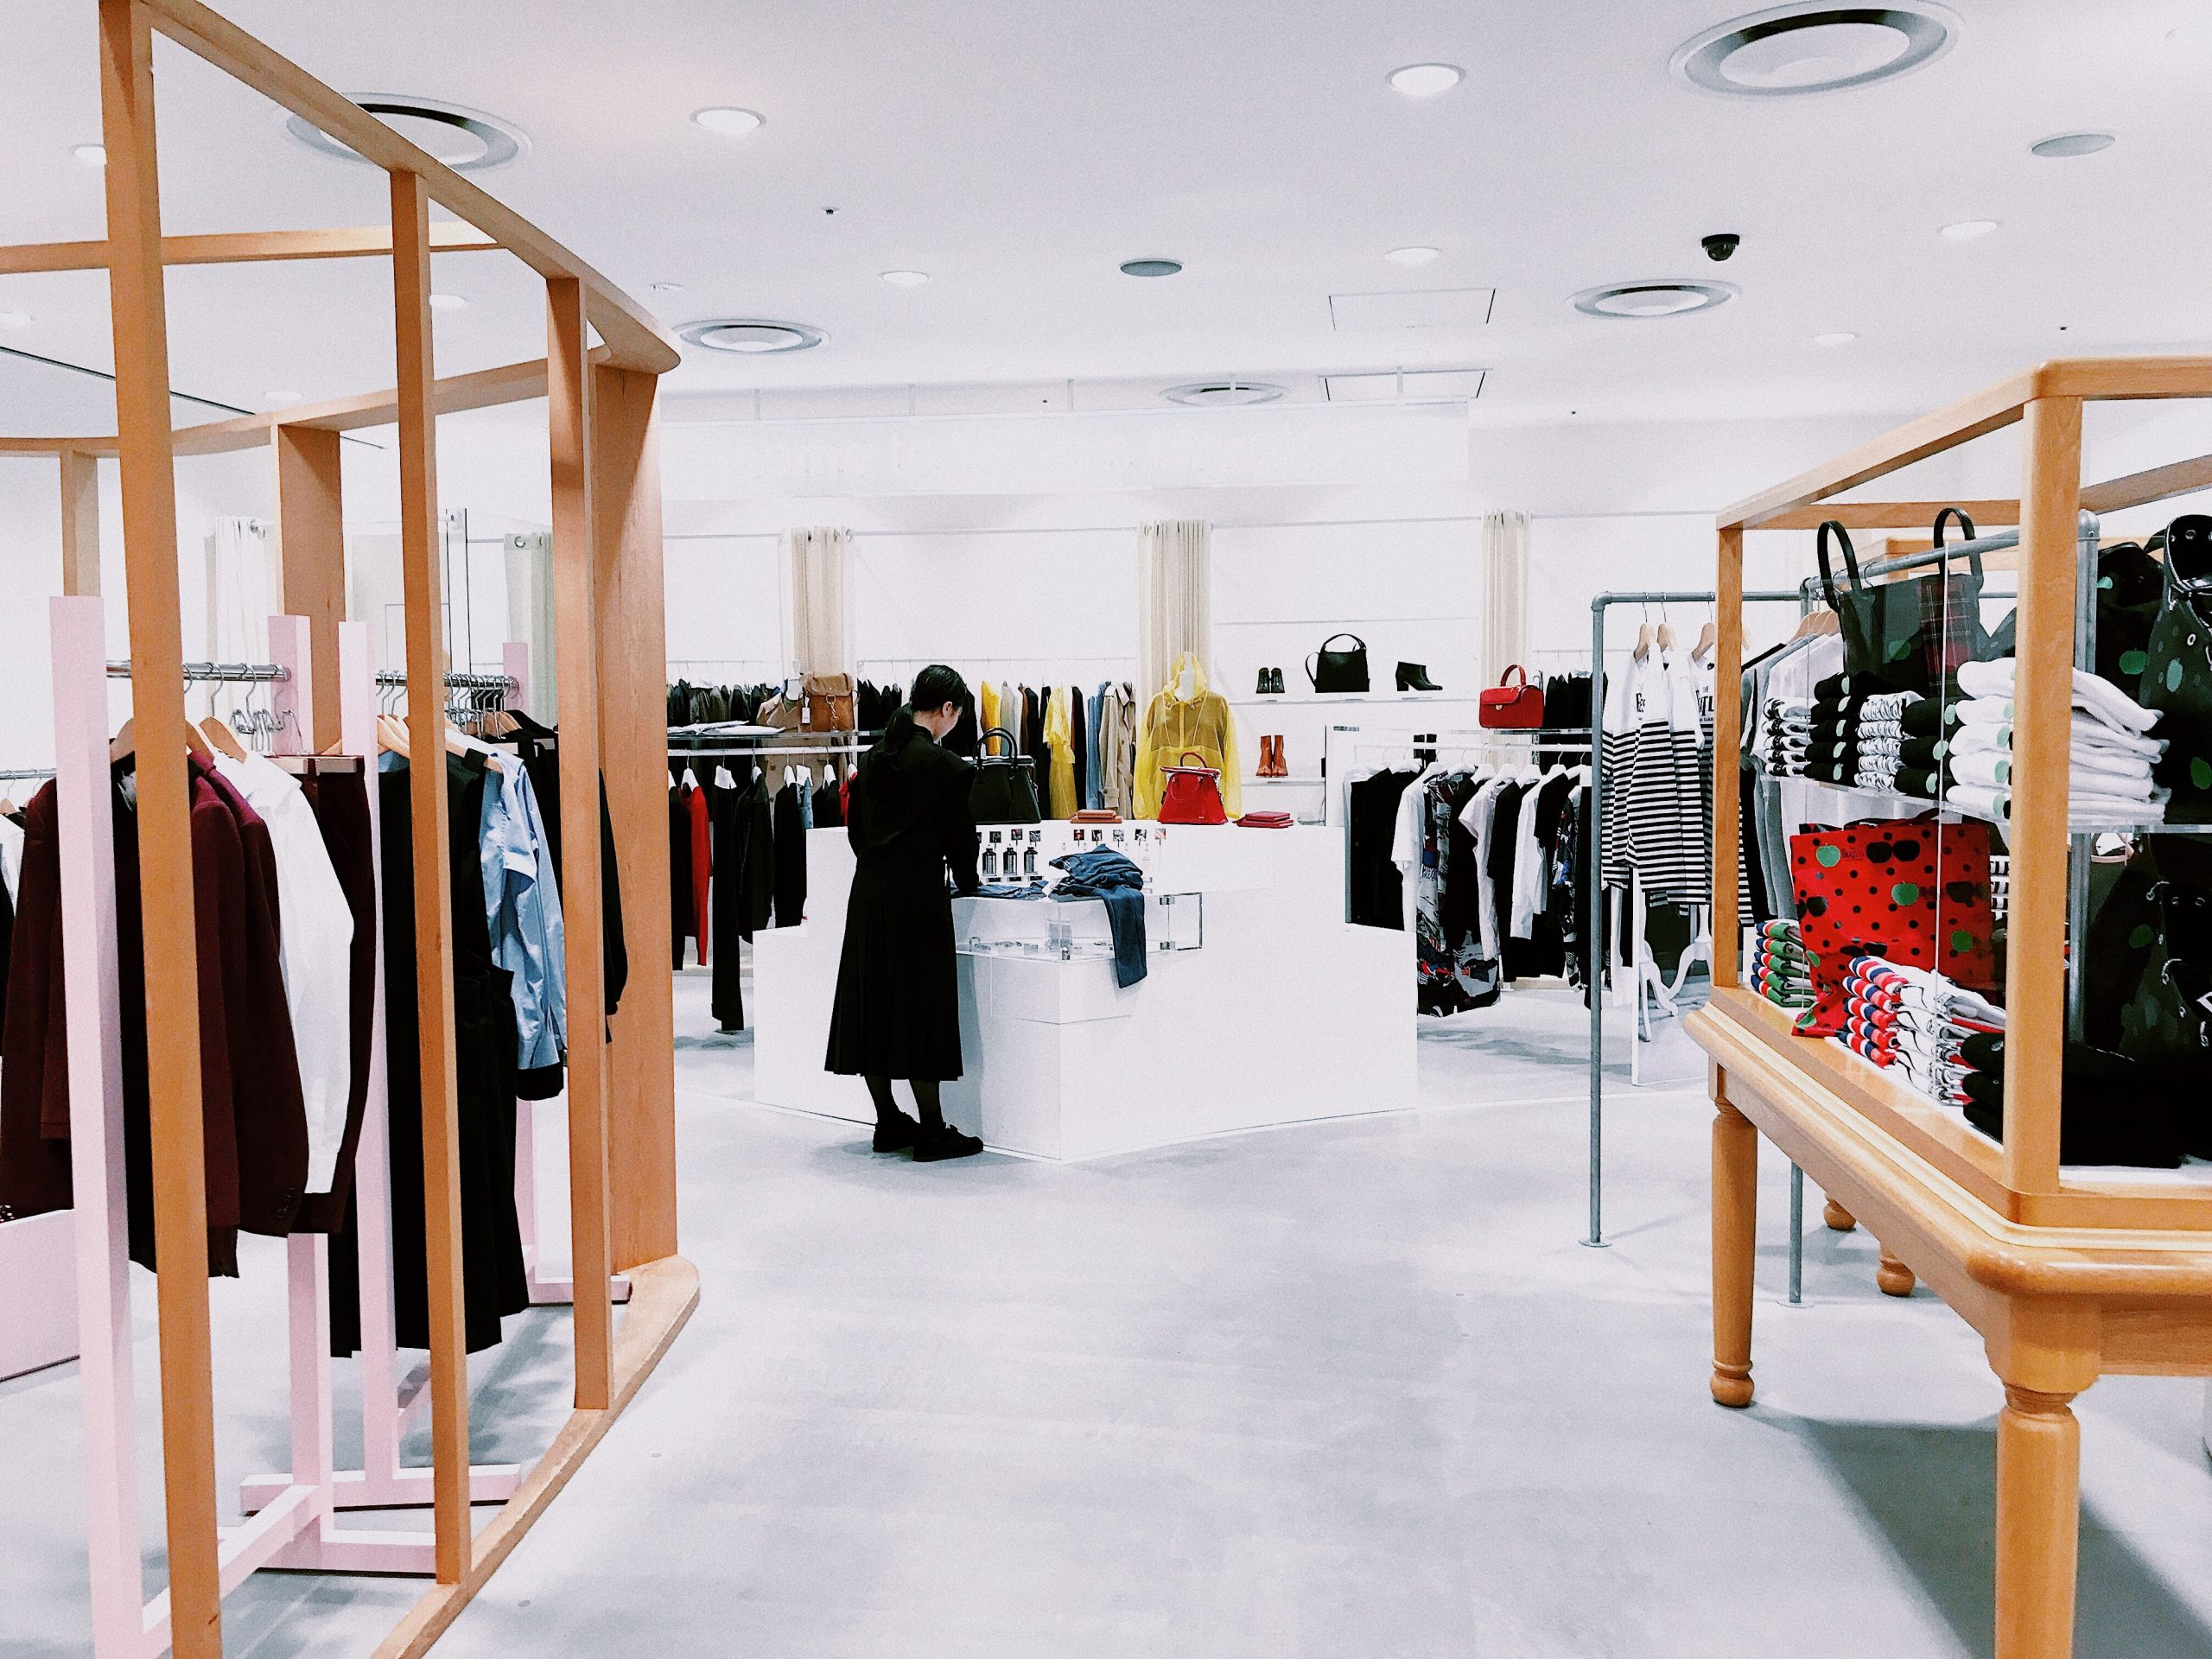 woman standing inside clothing area